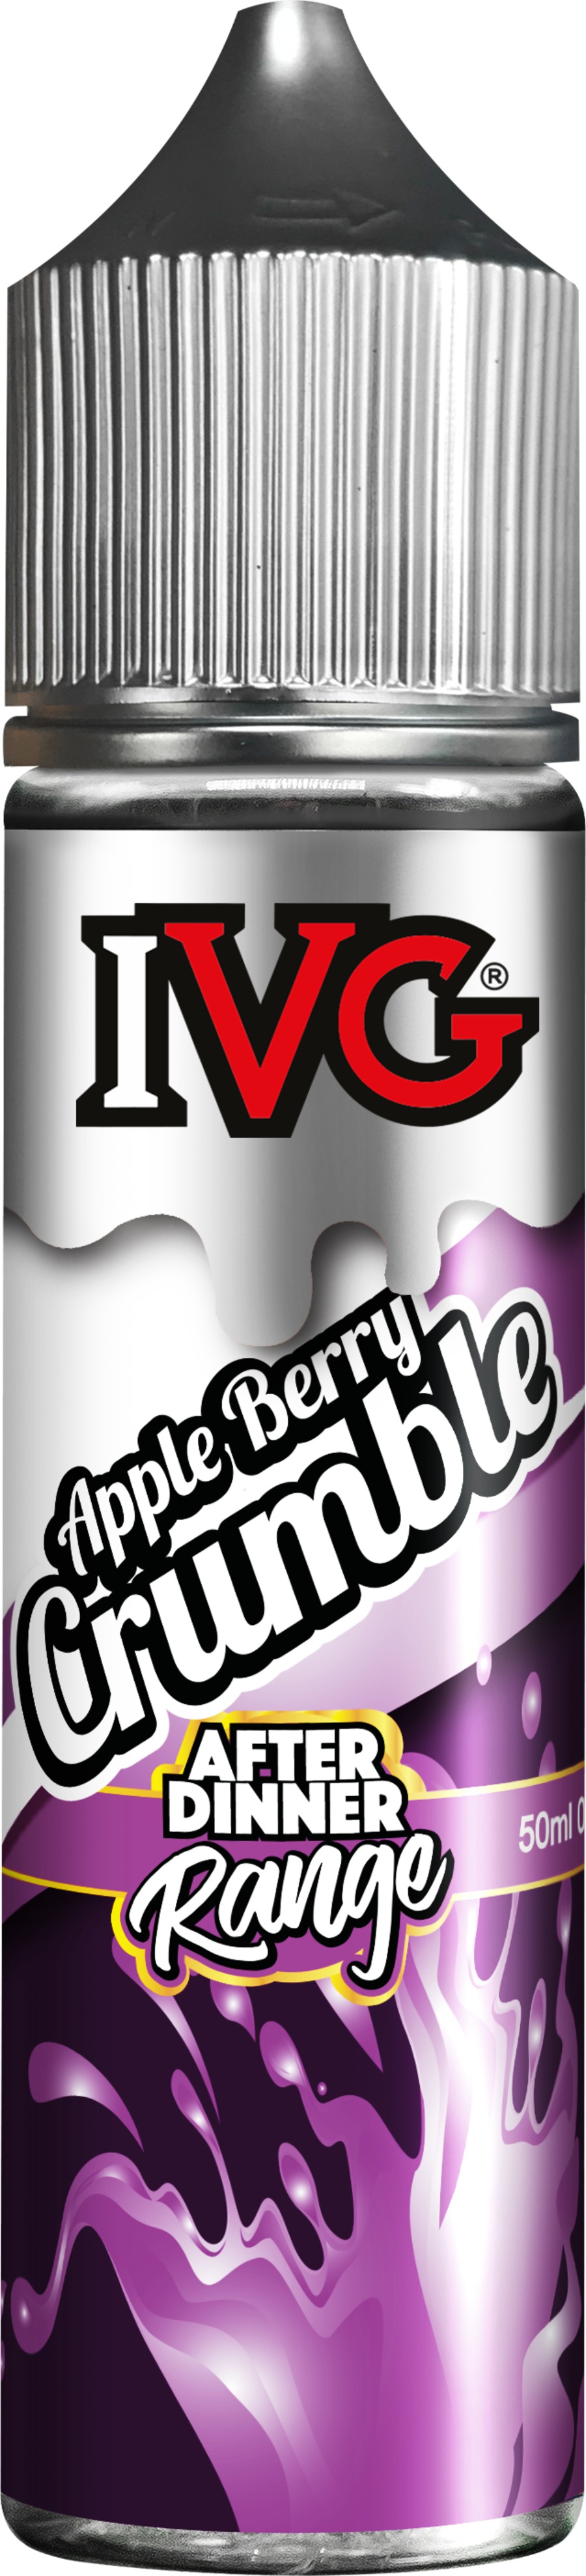 Appleberry Crumble By I VG Desserts 50ml 0mg